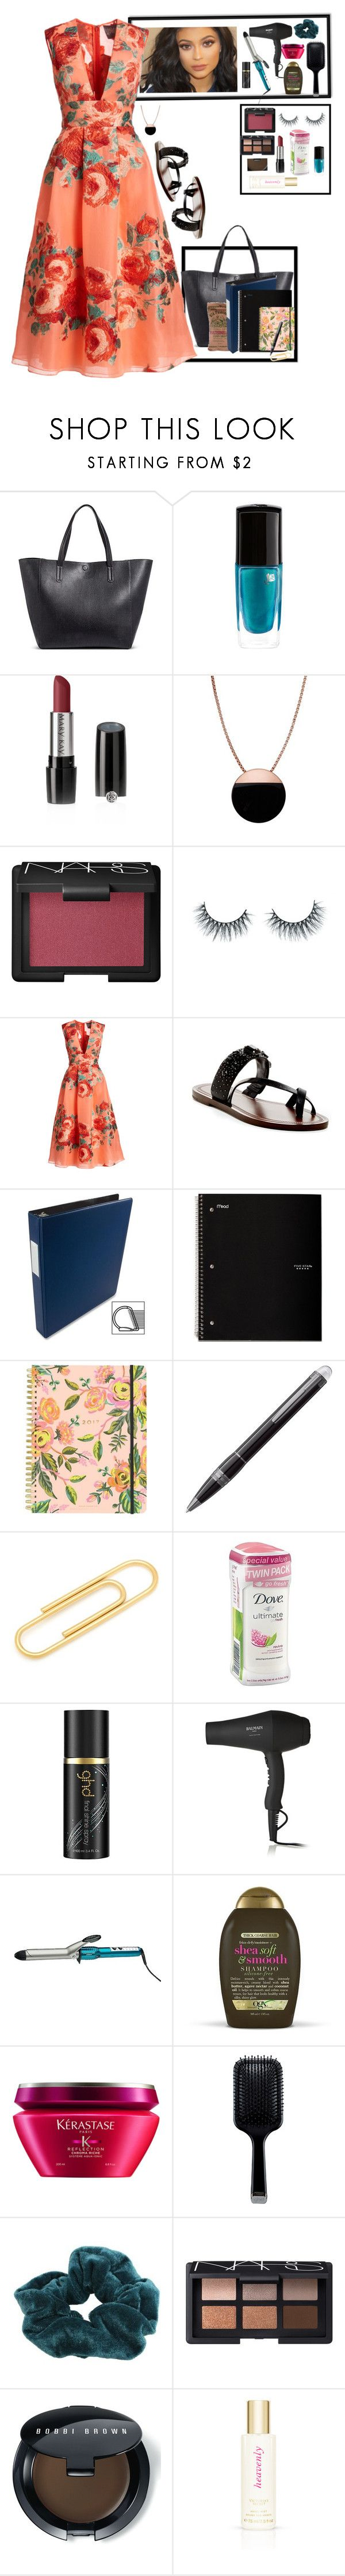 """""""July 10th"""" by rachelellen21 ❤ liked on Polyvore featuring Merona, Lancôme, Mary Kay, Skagen, NARS Cosmetics, Unicorn Lashes, Lela Rose, Via Spiga, Five Star and Rifle Paper Co"""